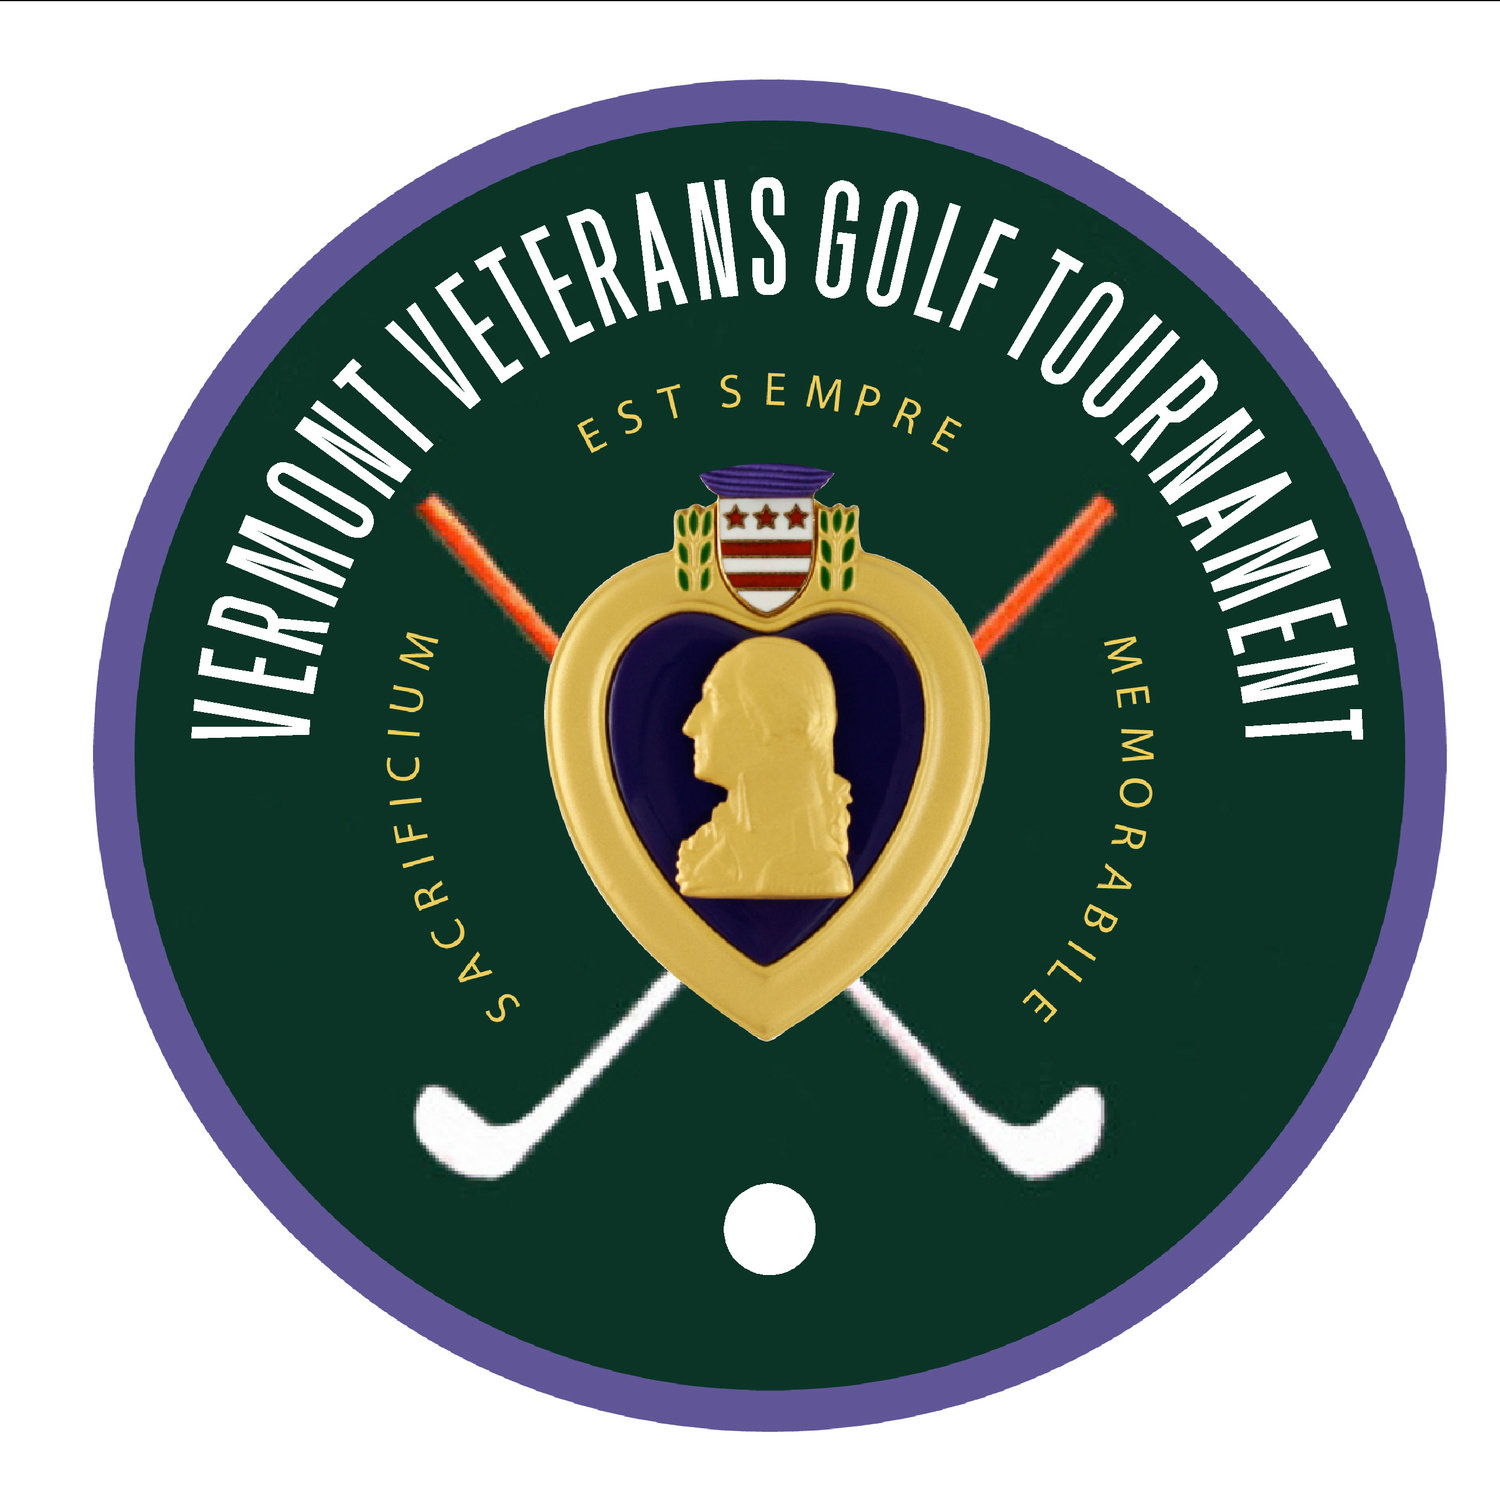 Vermont Veteran Golf Tournament